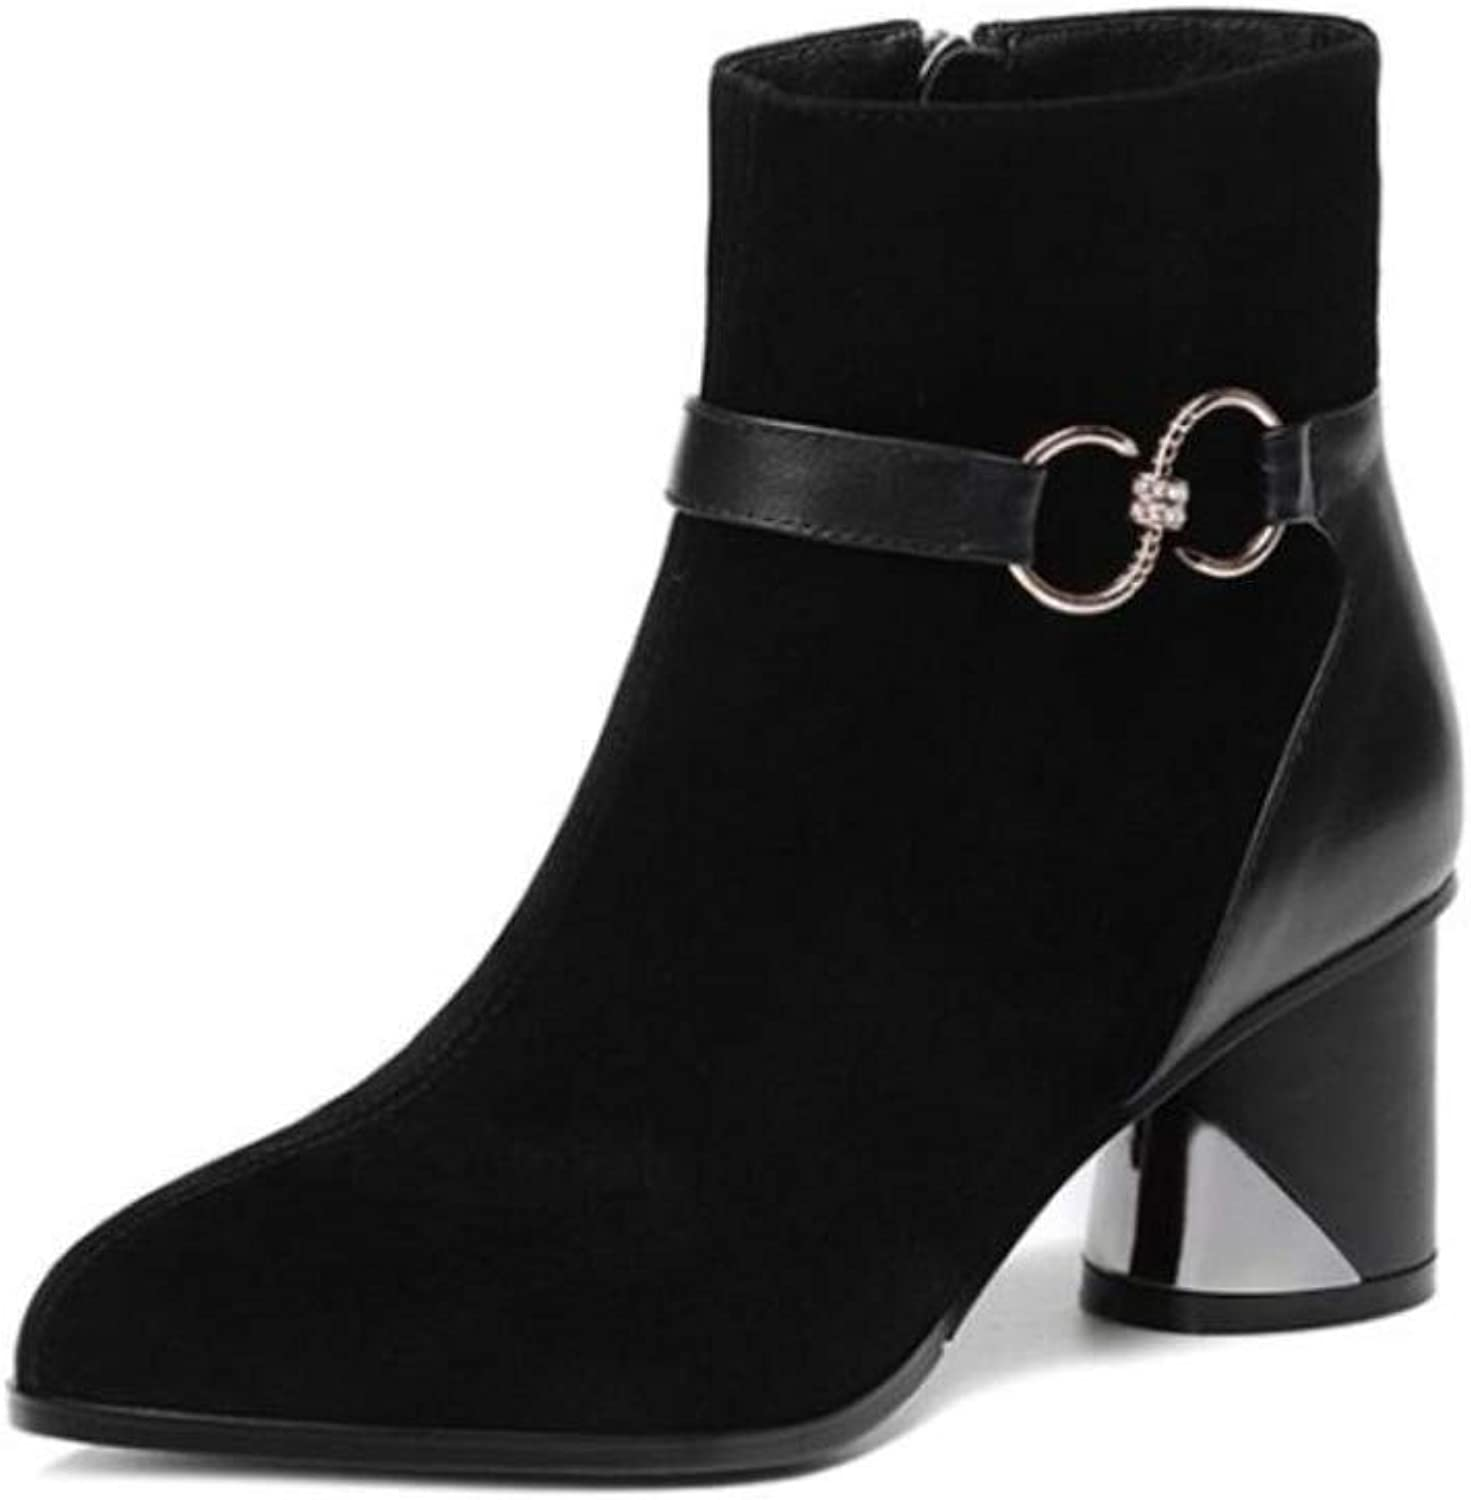 Womens Vegan Suede Lace-Up Zipper Chunky High Heel Ankle Boot Scrub Booties Women's Boots High Heels Thick Martin Boots